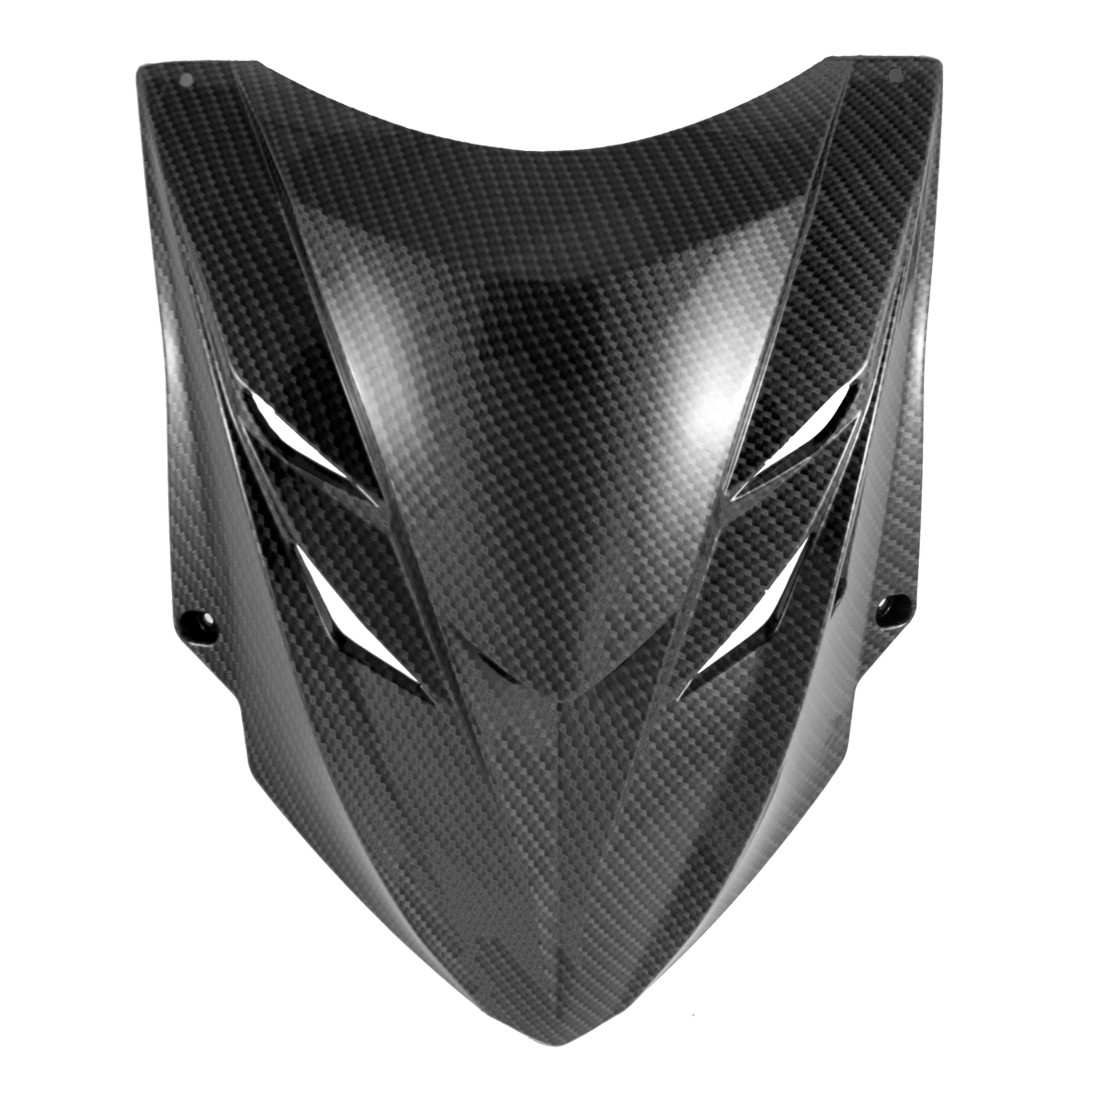 Motorcycle Black ABS Plastic Carbon Fiber Pattern Front Panel Cover for BWS